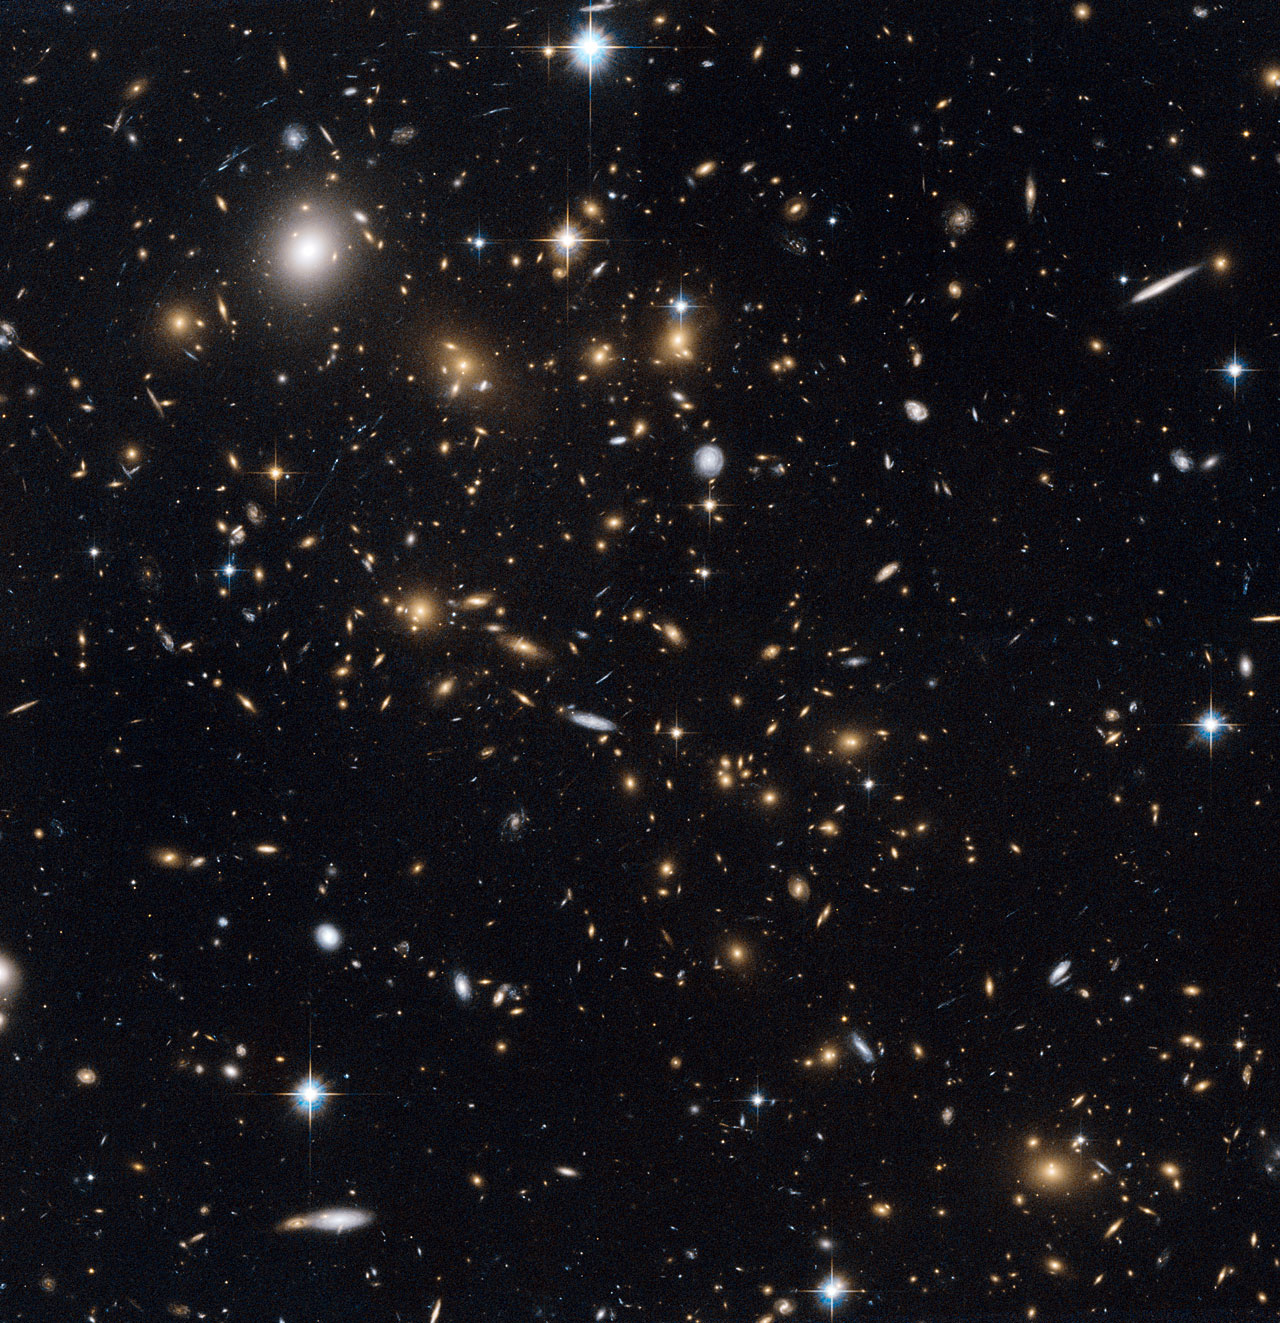 A snowstorm of distant galaxies